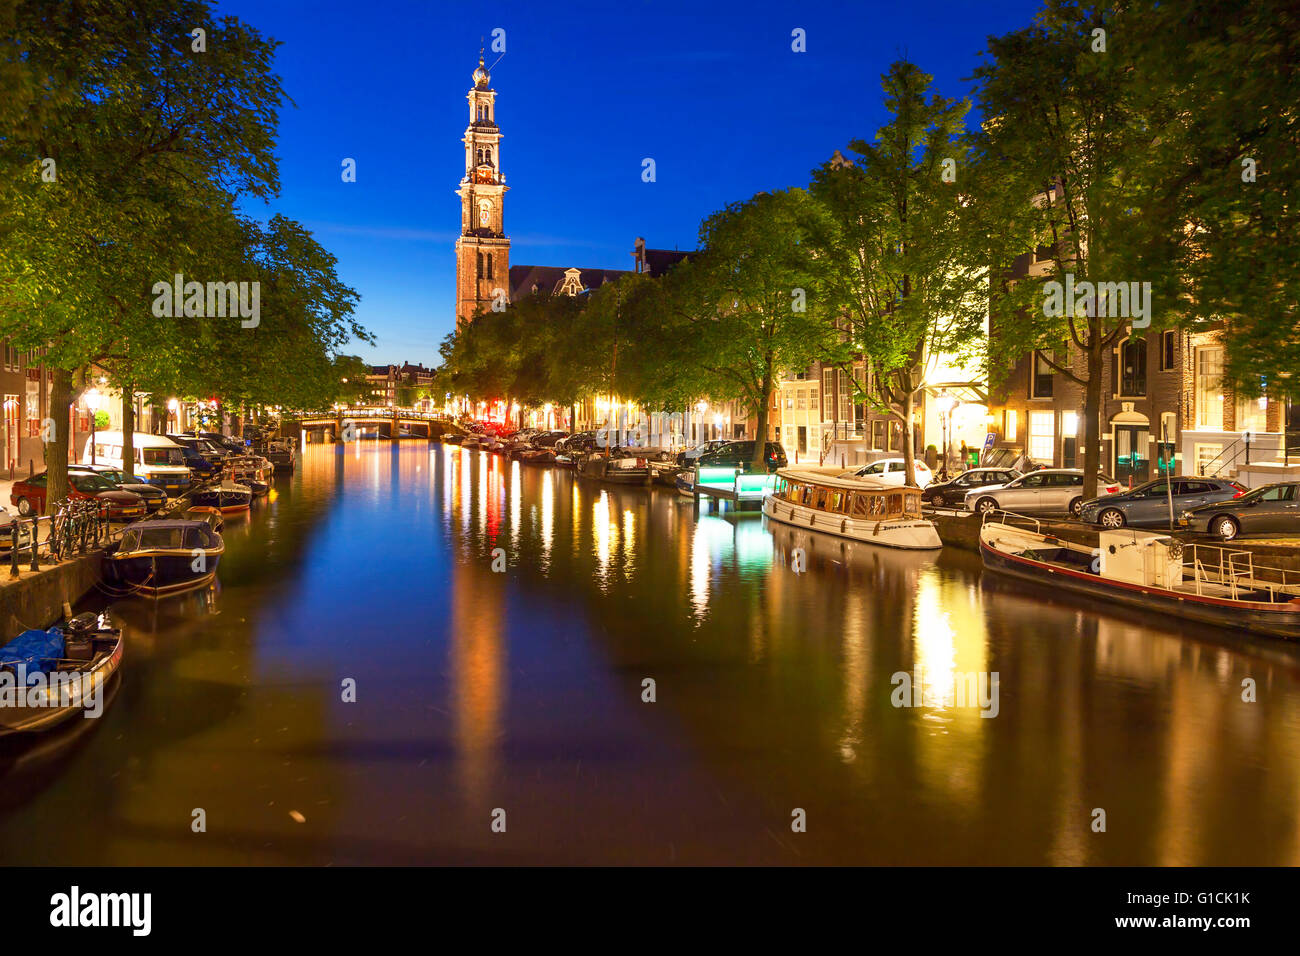 Western church reflecting in water of Prinsengracht canal in Amsterdam - Stock Image